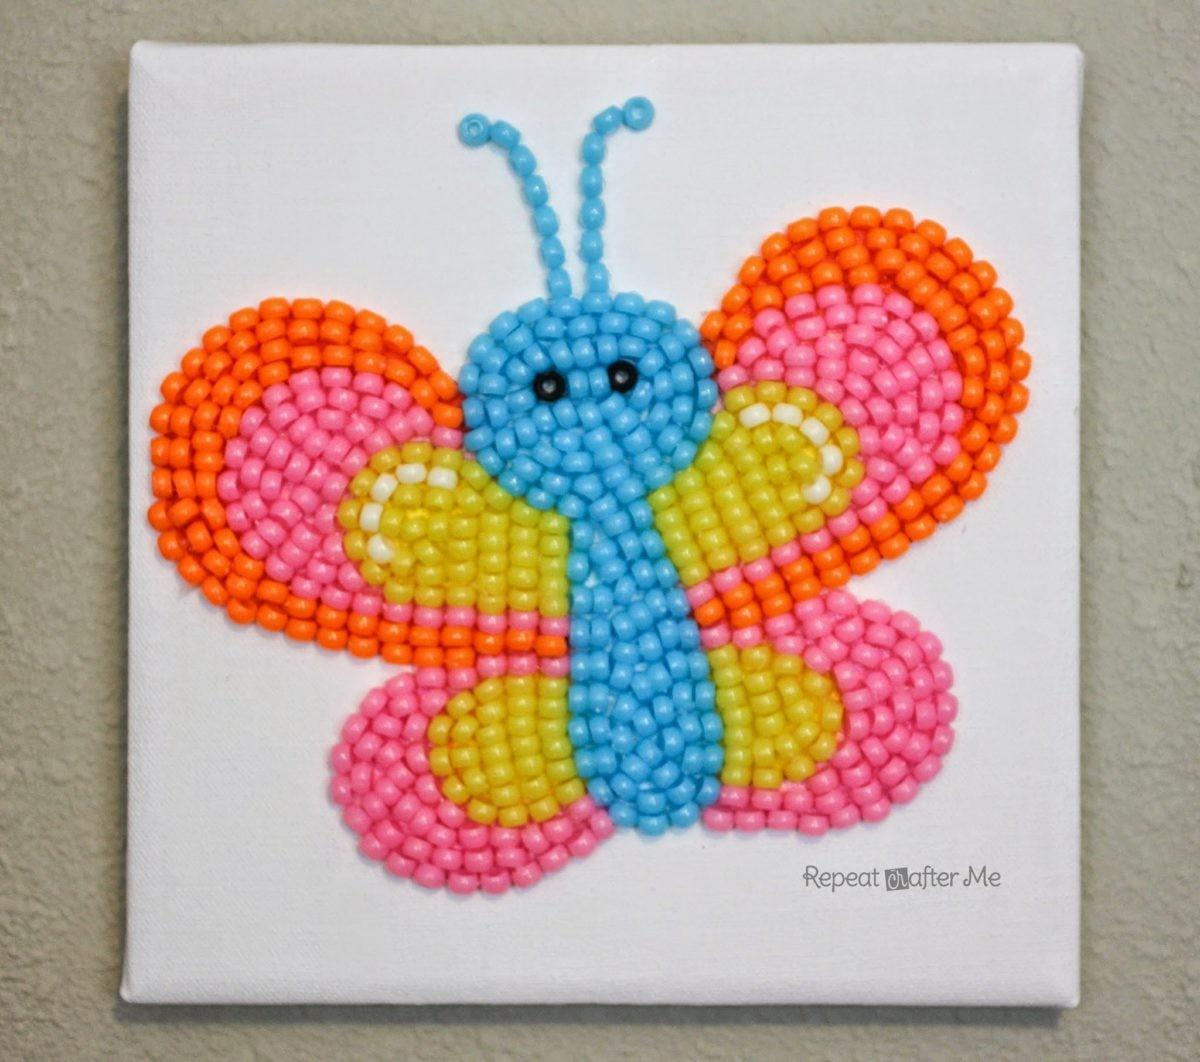 Pony Bead Butterfly Repeat Crafter